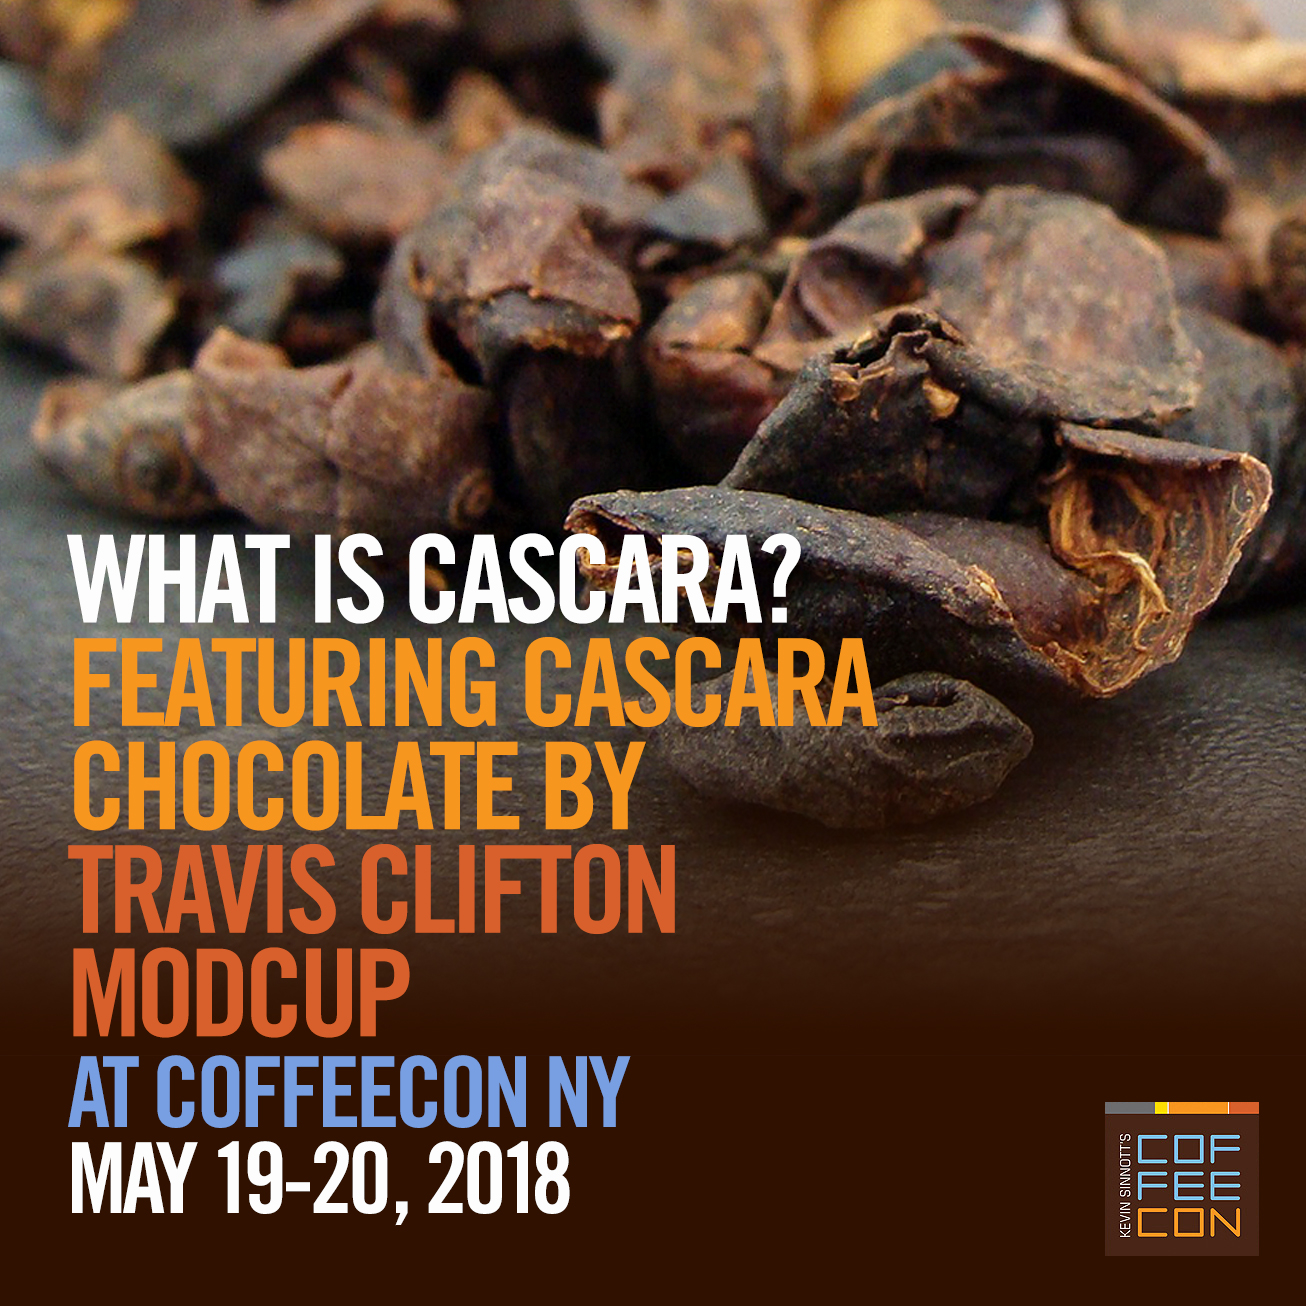 What is Cascara? at CoffeeConNY